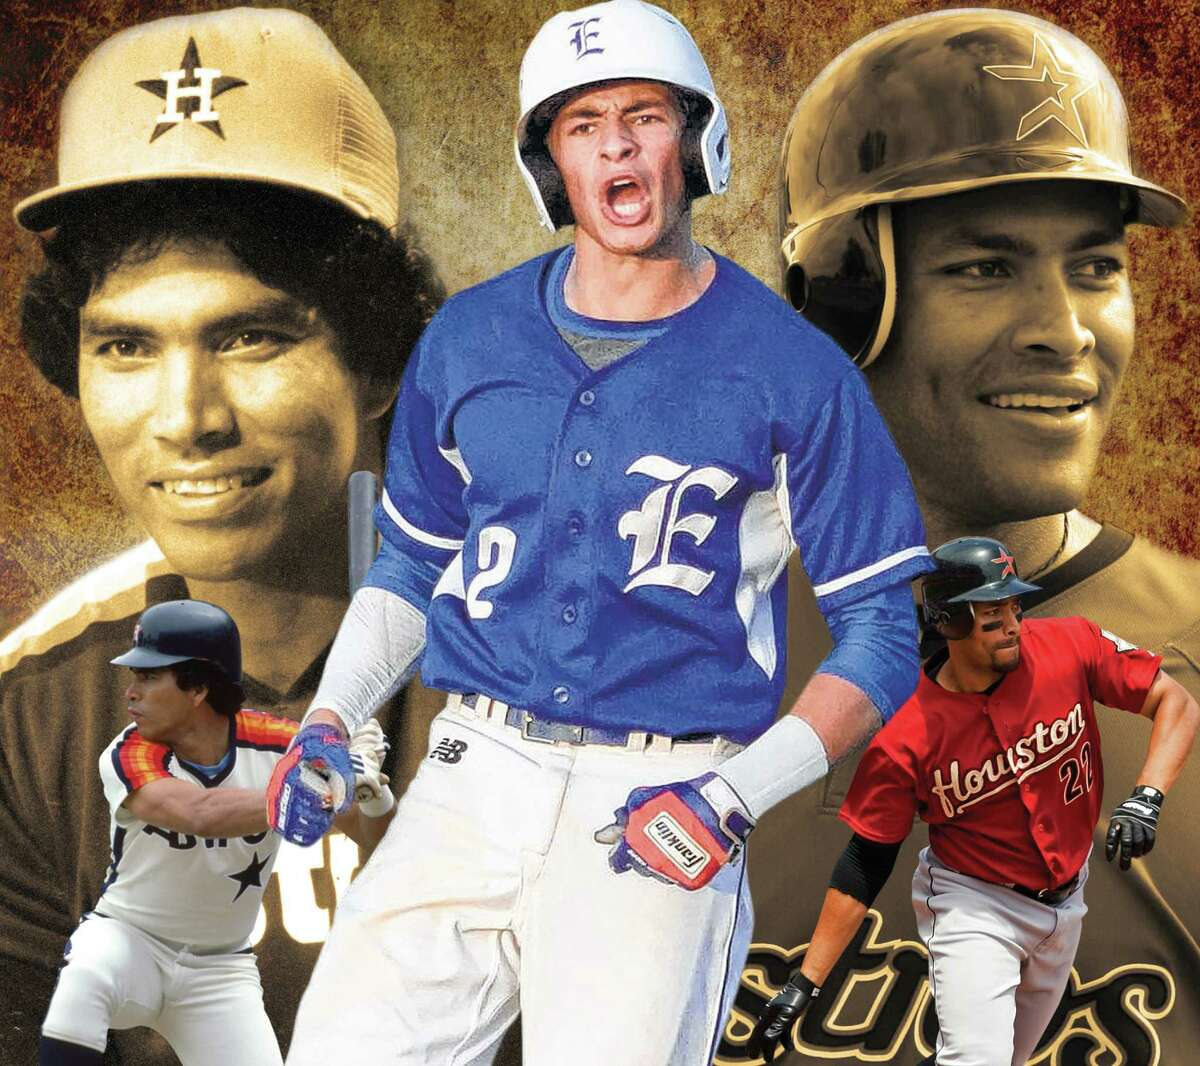 After excelling at Episcopal, Trei Cruz, center, was drafted in 2017 by the Astros, for whom his grandfather, Jose Cruz, left, starred. But Trei delayed professional goals to attend Rice where his dad, Jose Jr., was a three-time All-American.